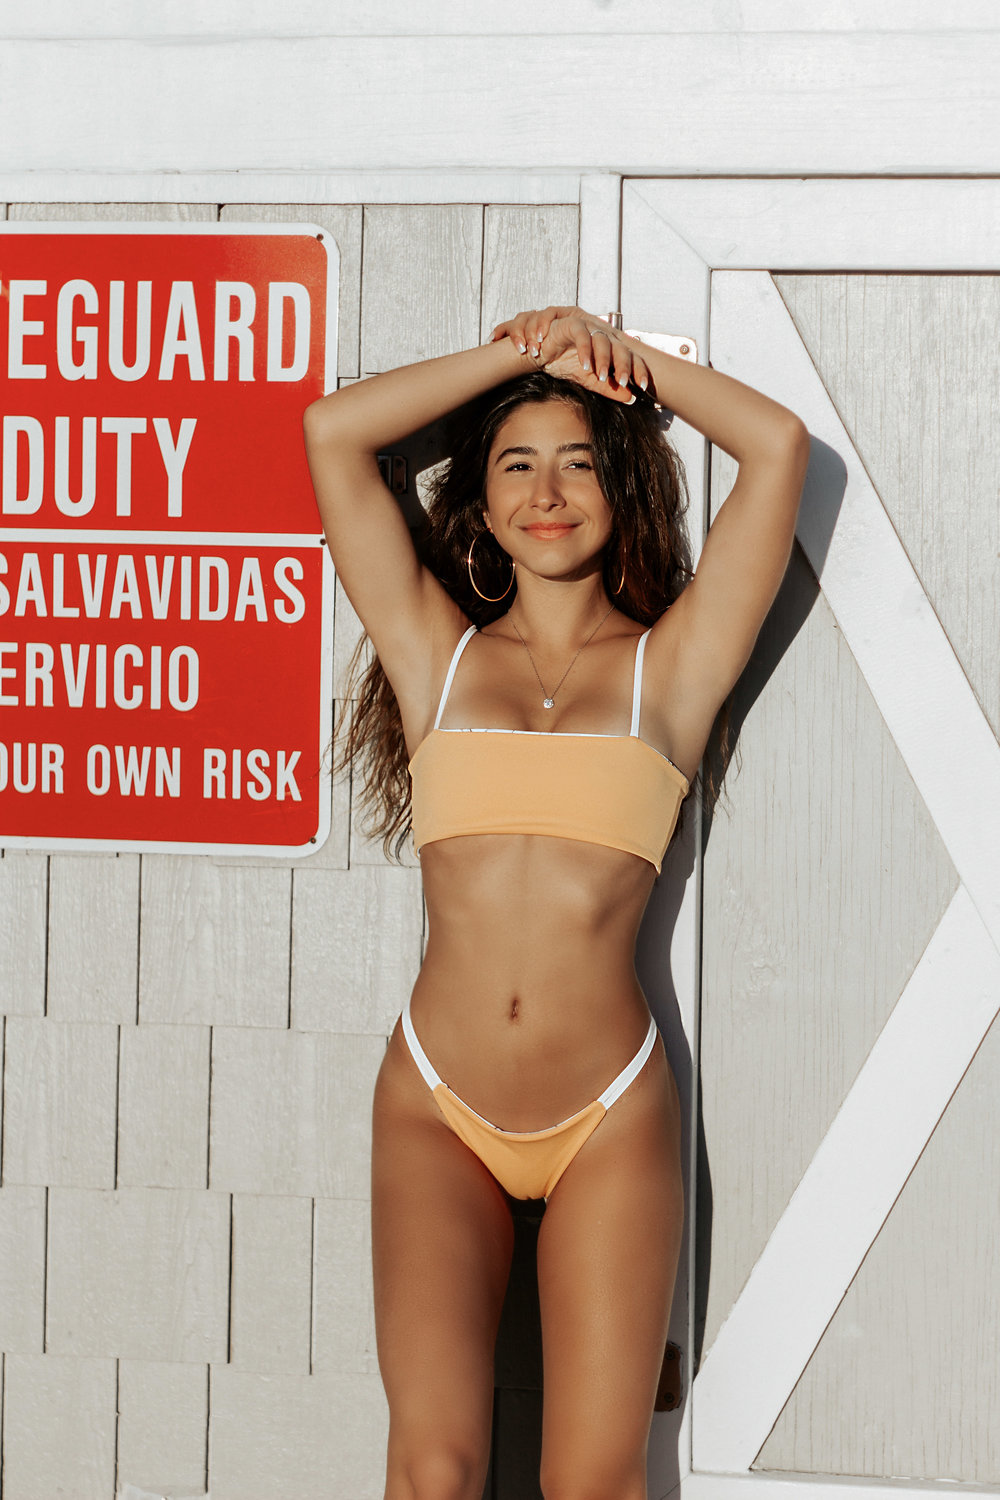 Swimwear, Social Media Posts, Product, Content Posts and/or Website Photos | Contact for rates -